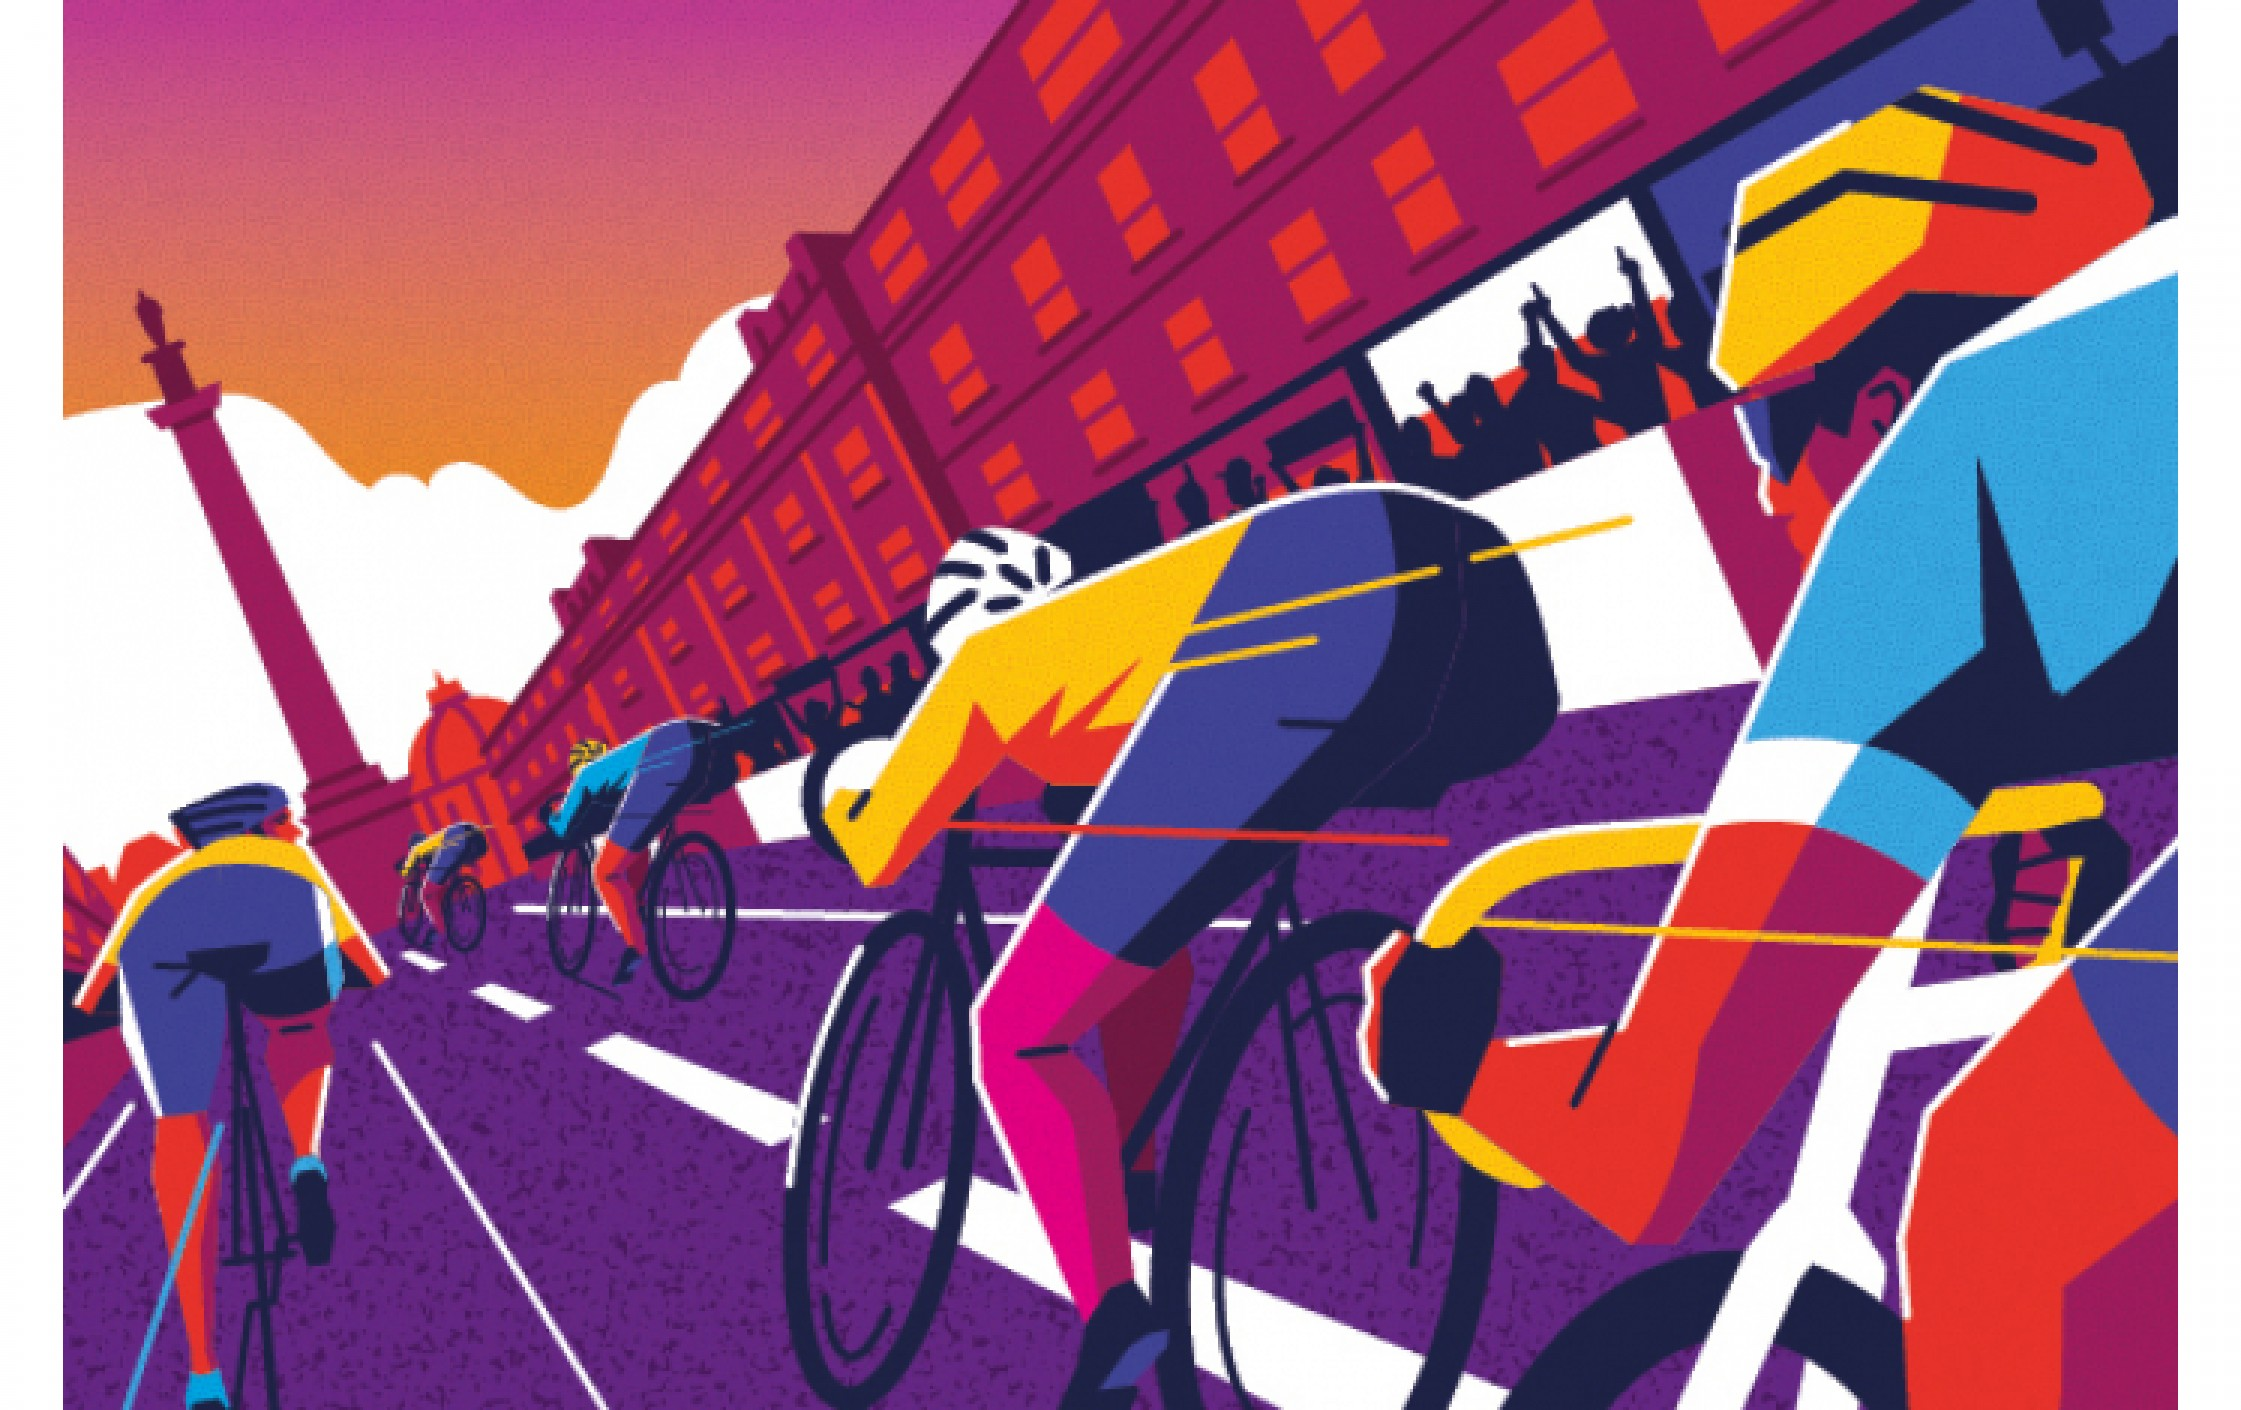 NE1's Newcastle City Sprint - sunset cycle racing in the heart of the city